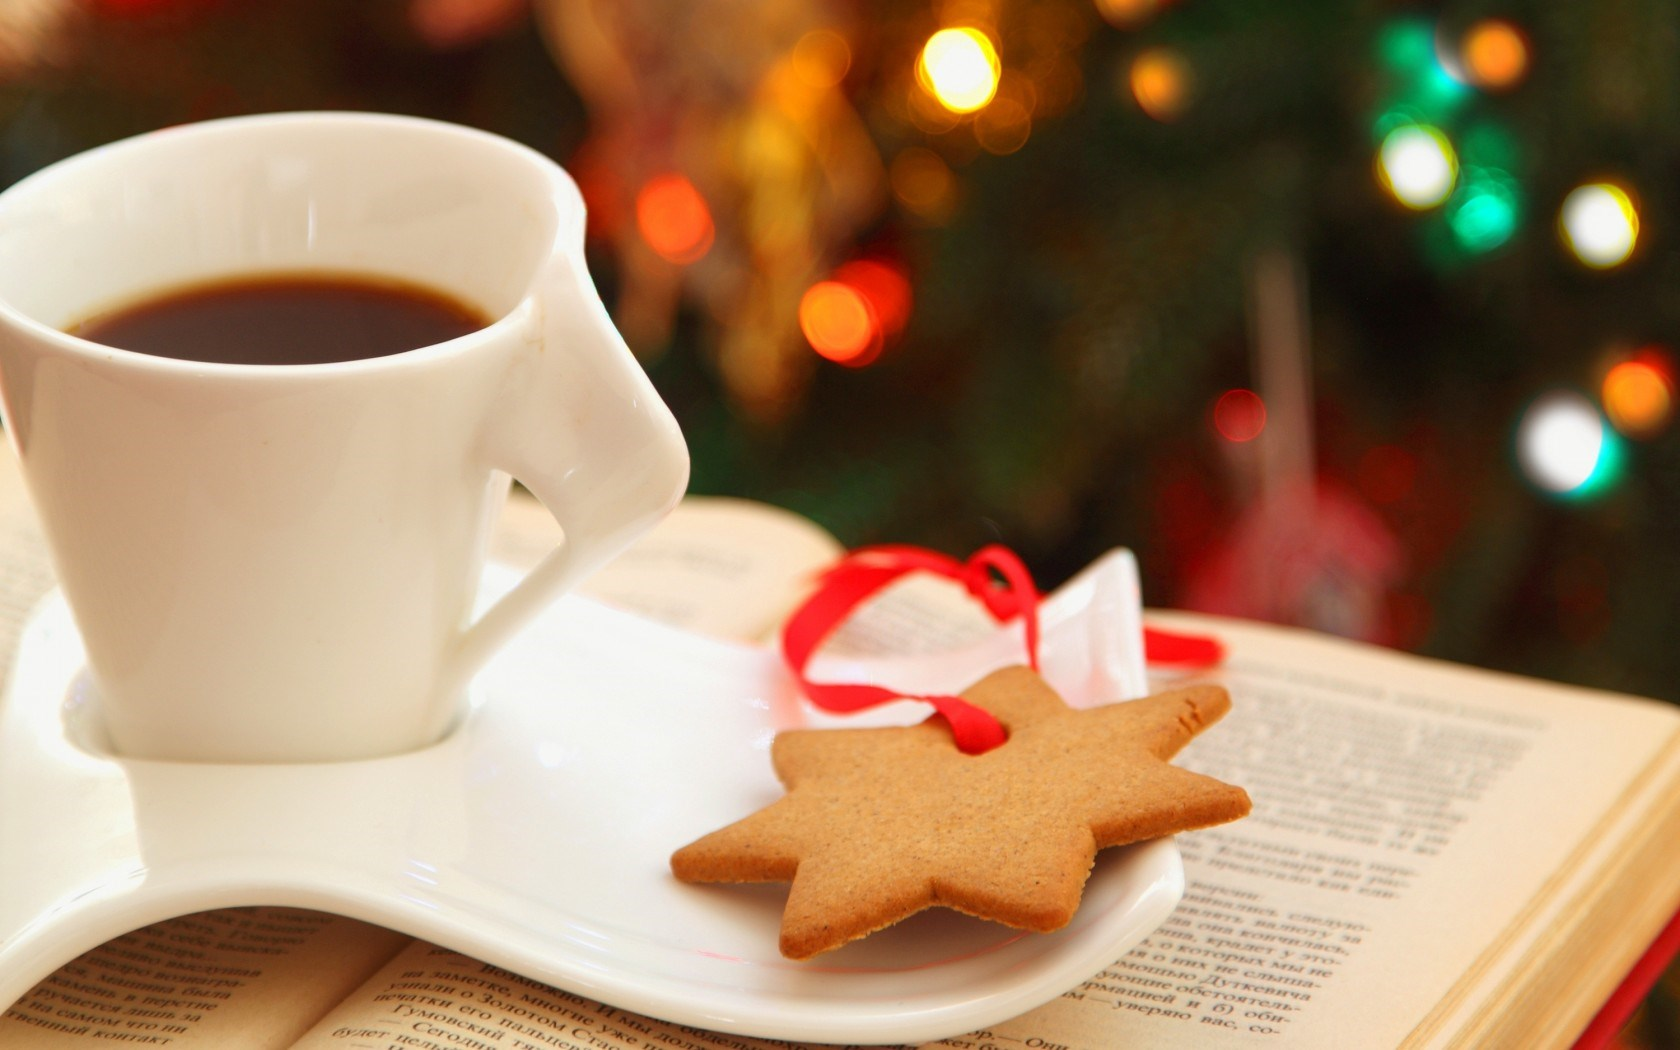 7008972-cup-coffee-cookies-star-book-lights-bokeh-christmas